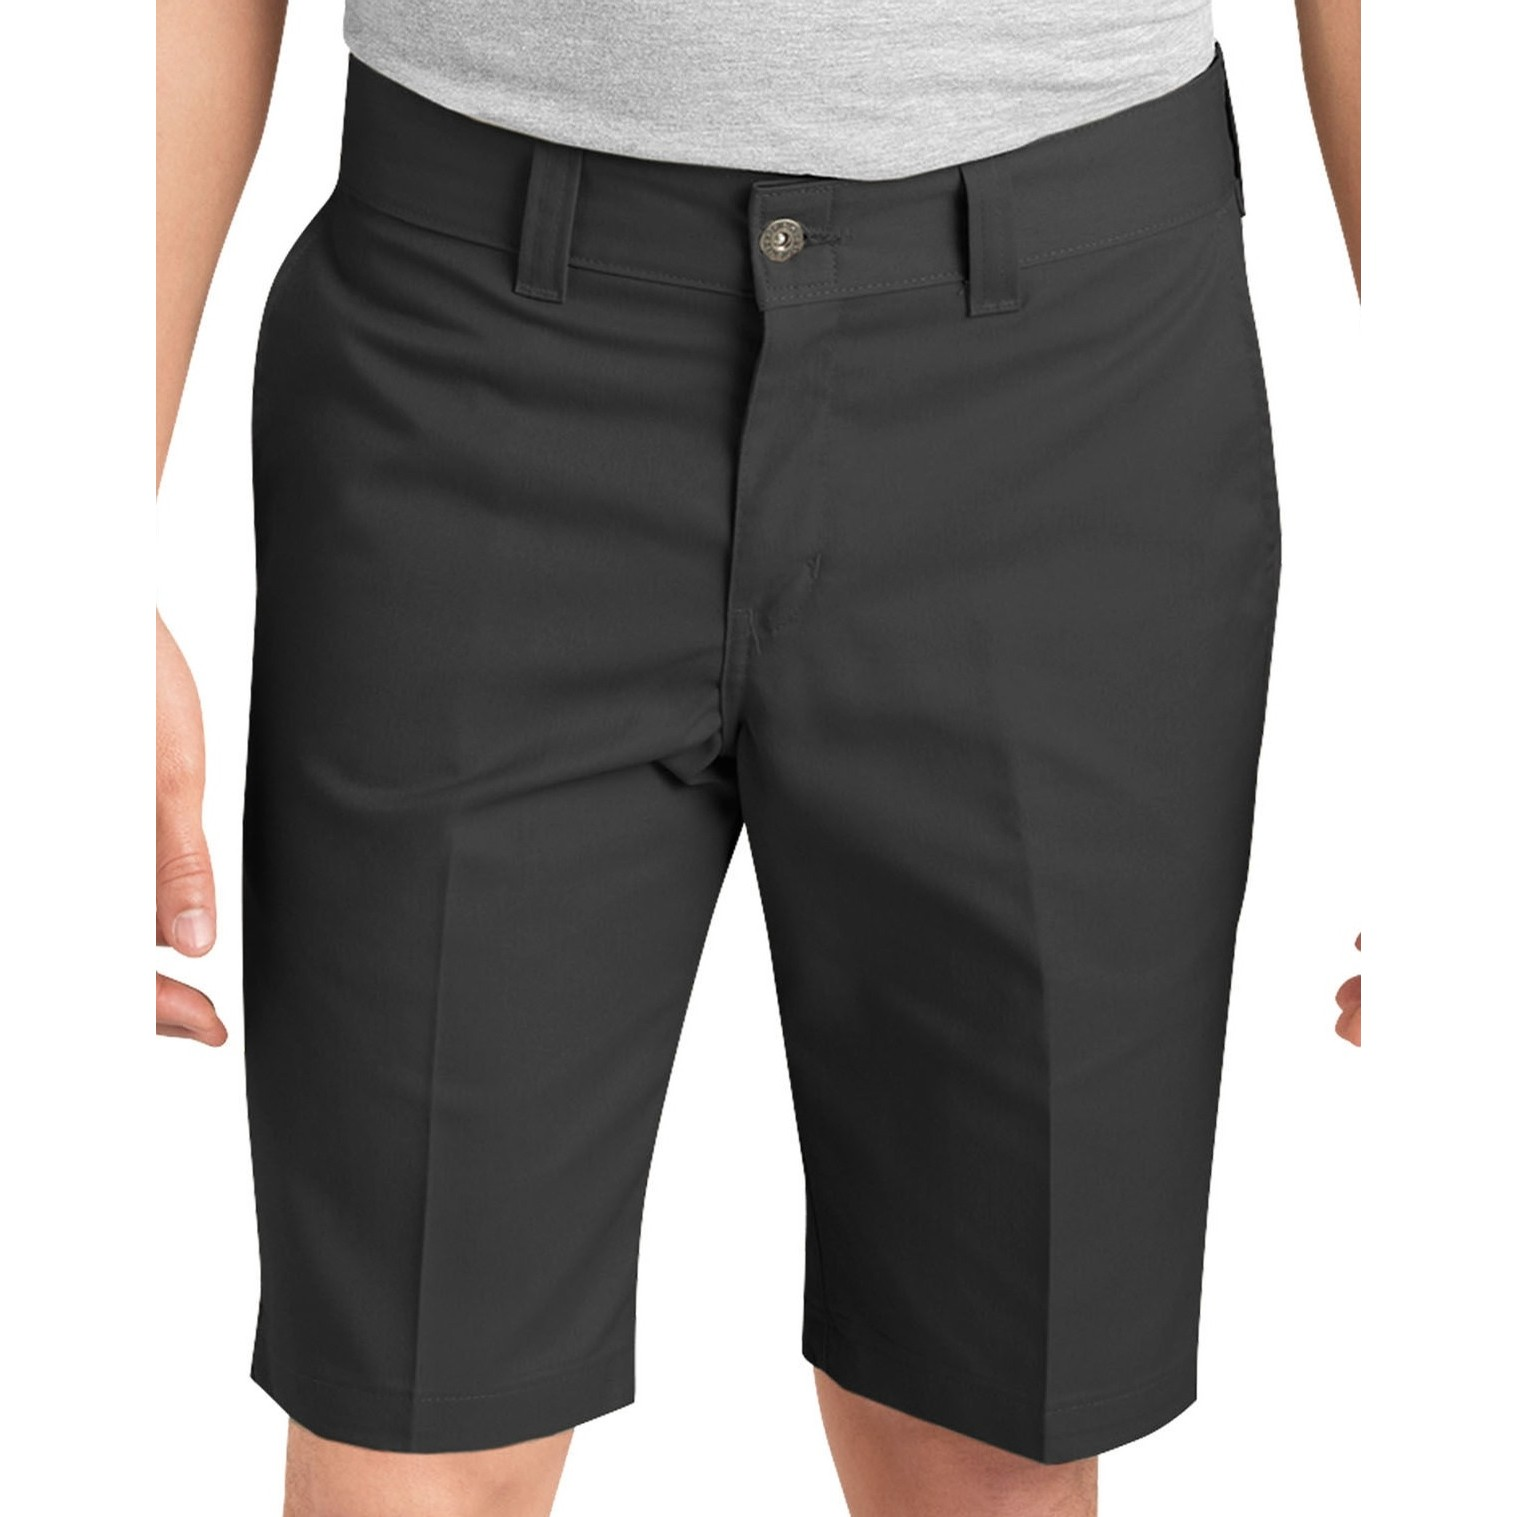 67 Slim Industrial Work Short (Black)